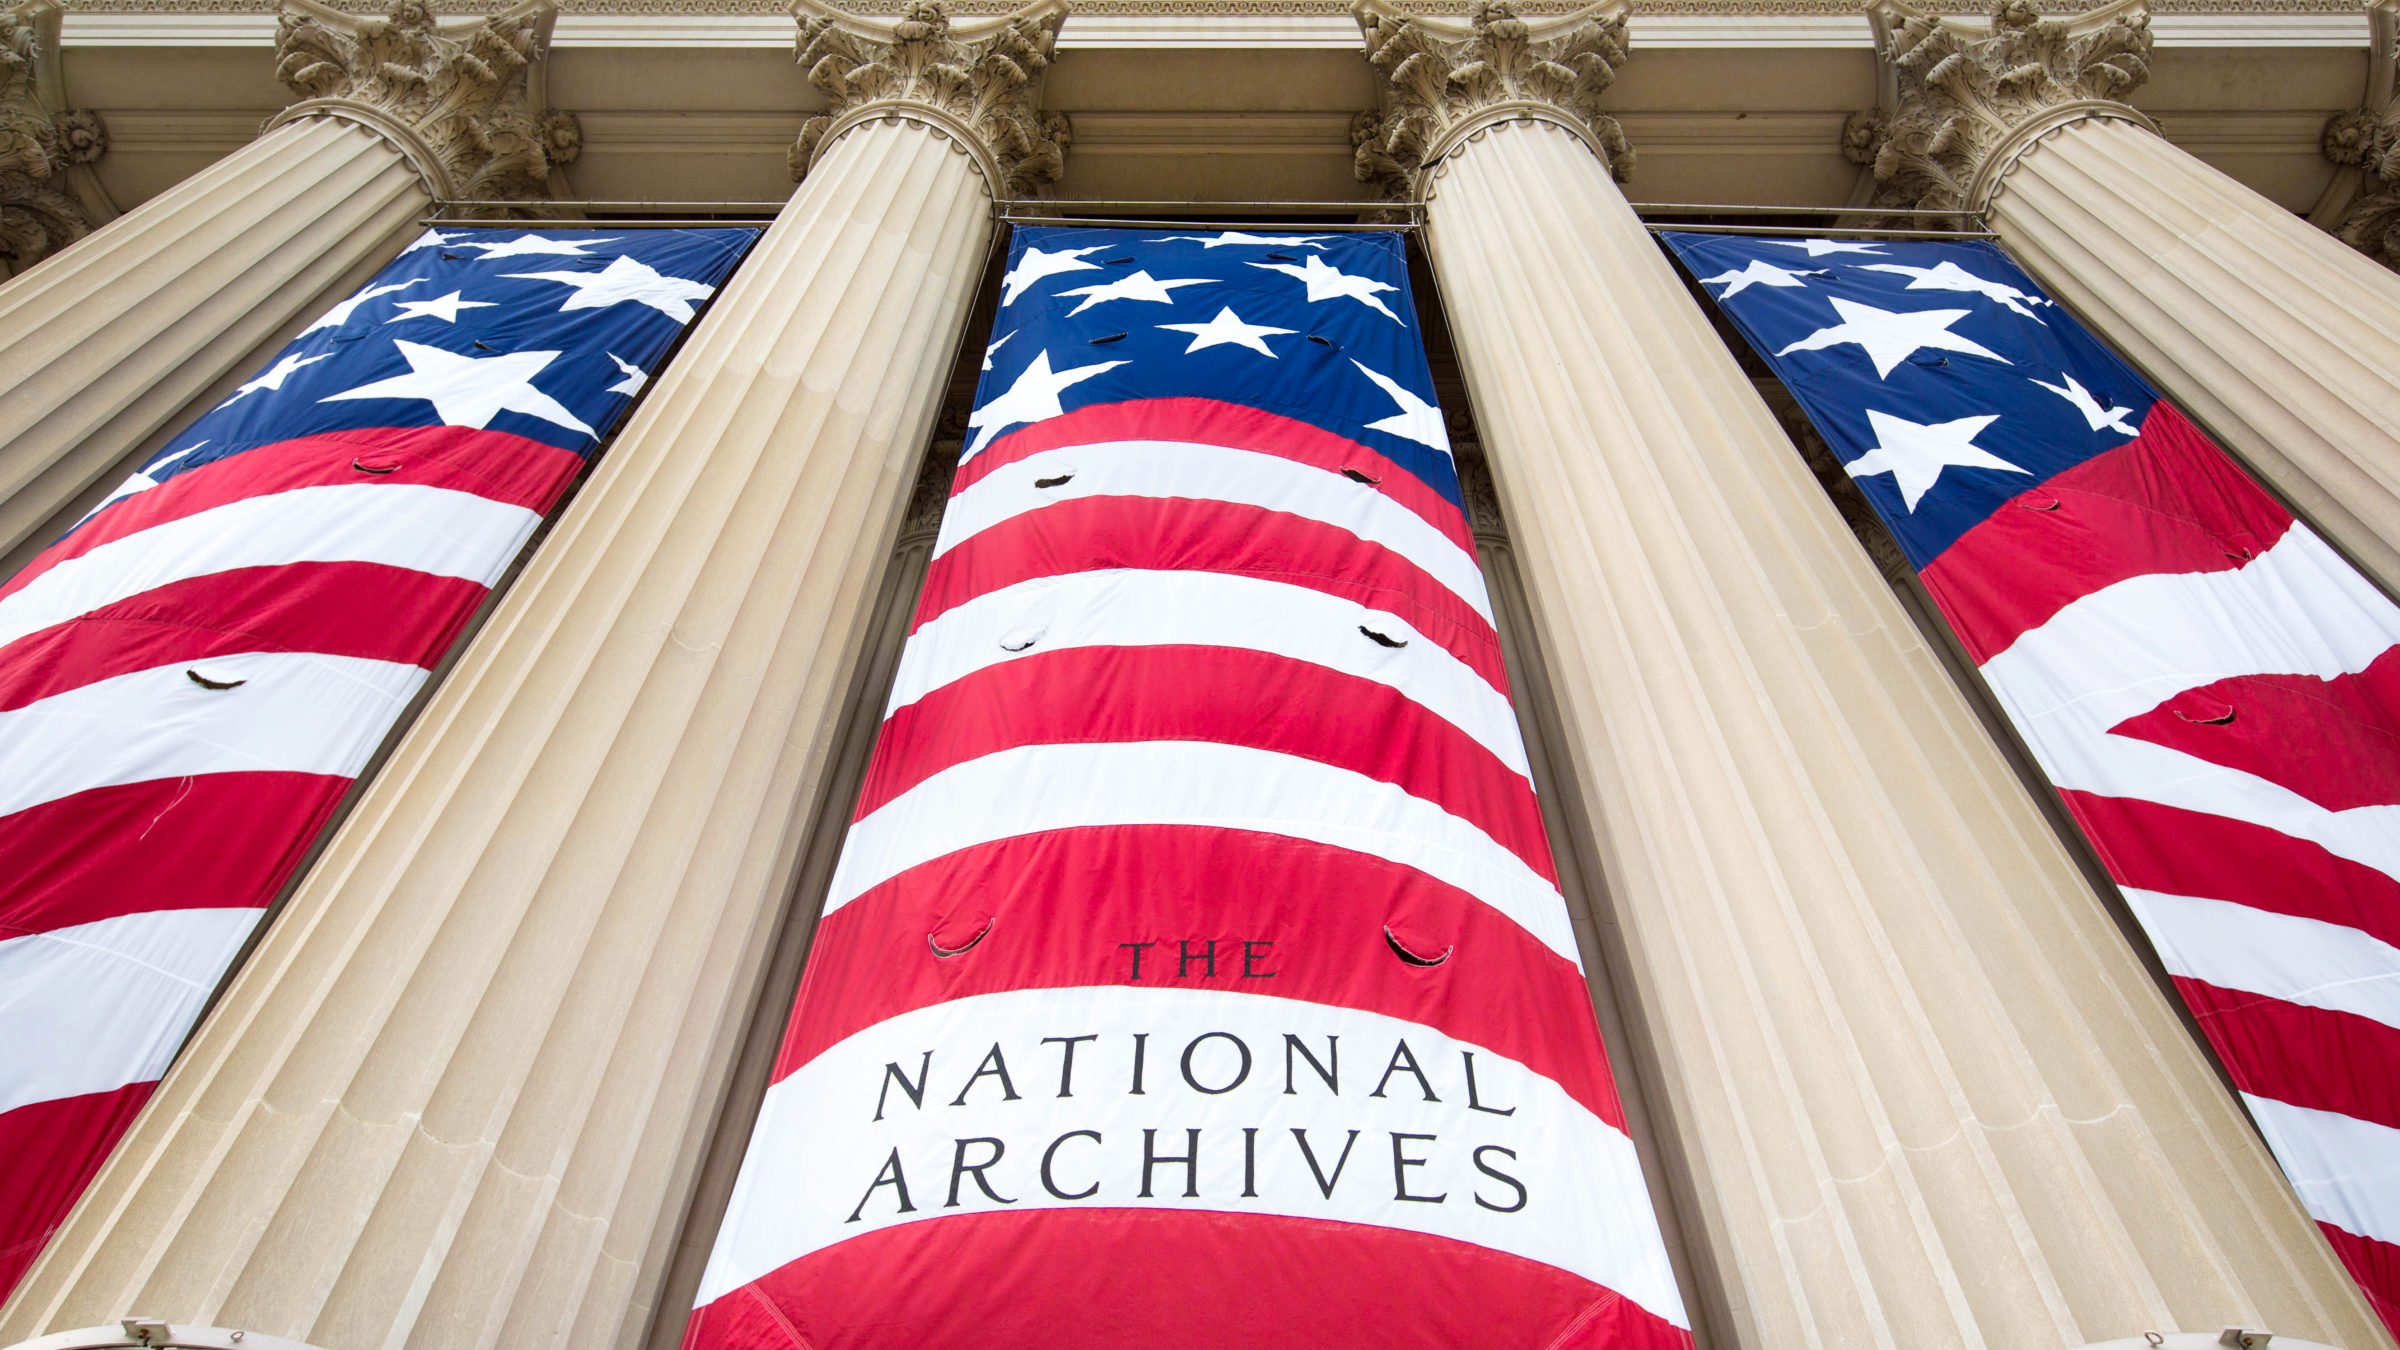 National Archives Exterior